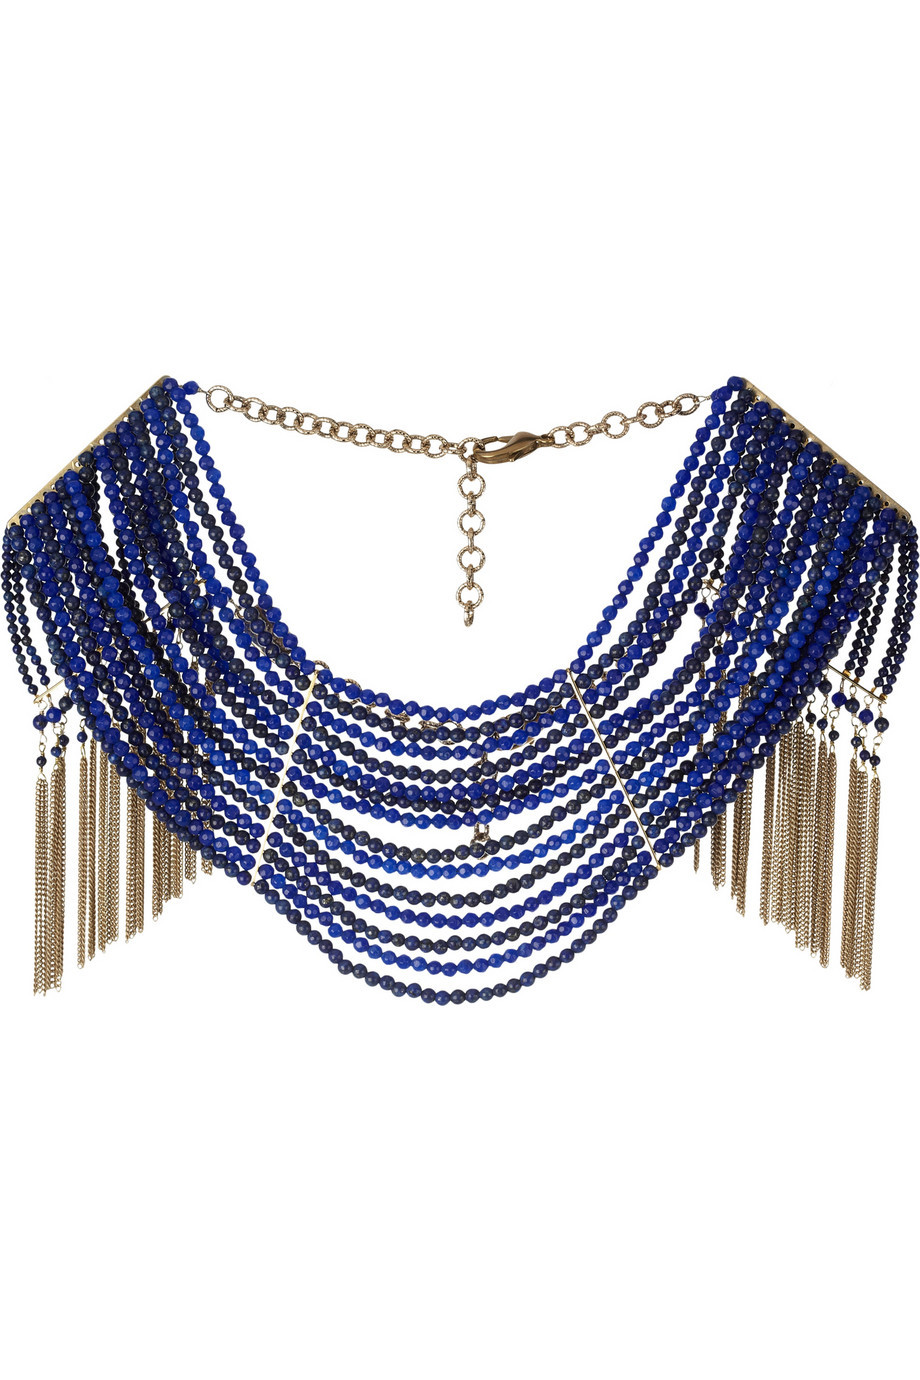 Blue and gold statement wedding necklace with fringe